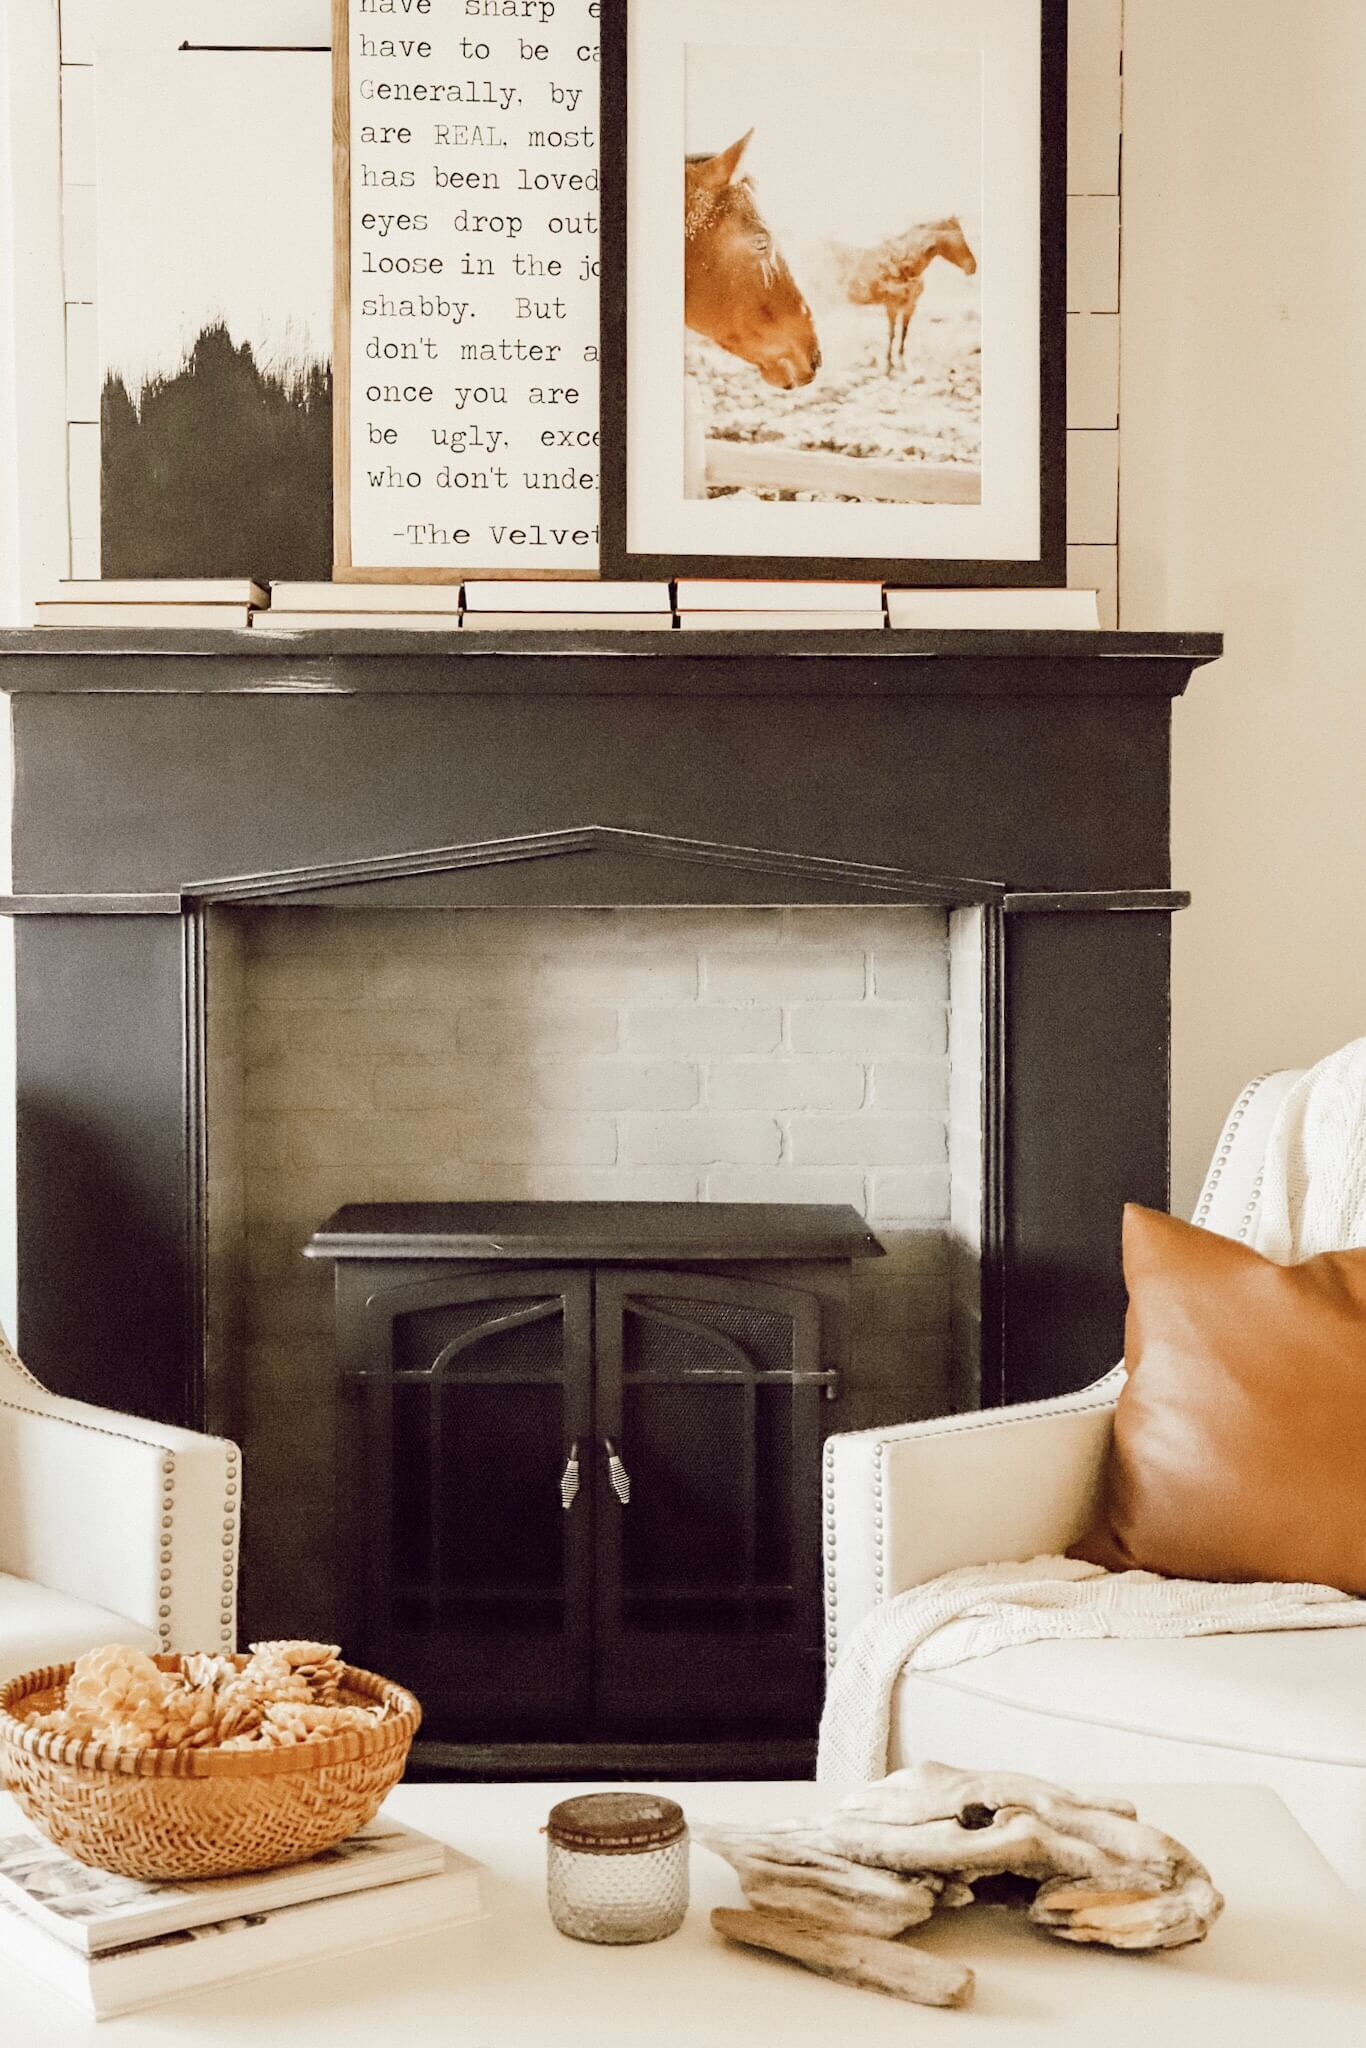 We updated out fireplace!  Introducing our new painted fireplace in black!  Such a showstopper!